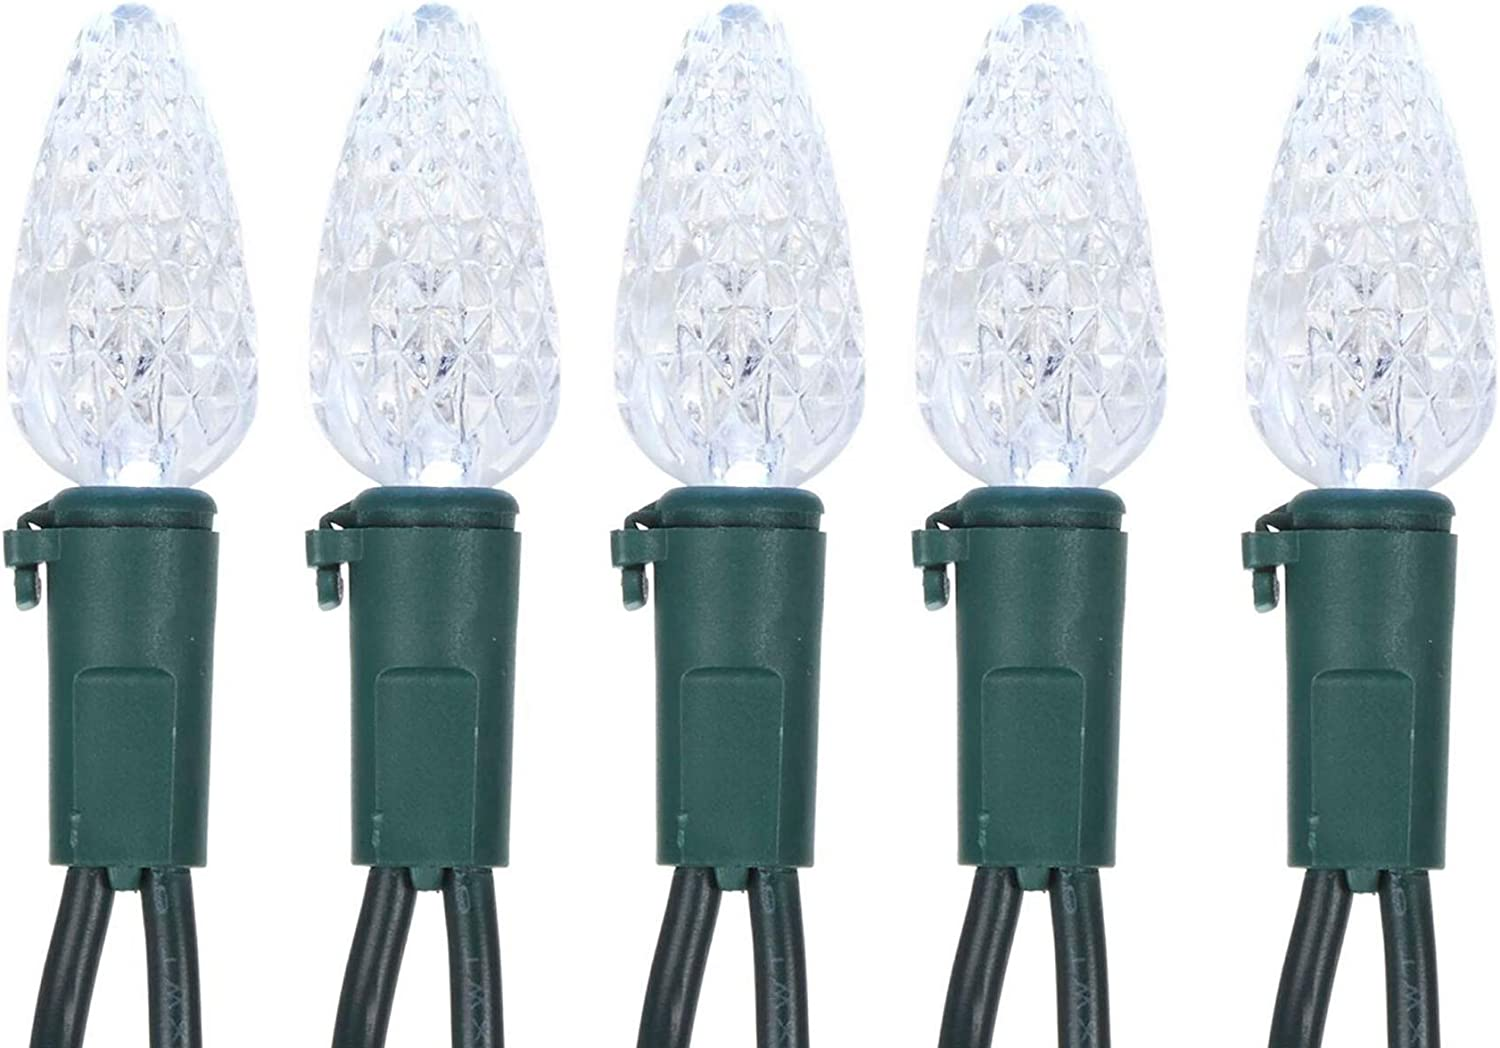 NOMA Christmas Lights Parties Patio Garden and Bedroom 33.3 ft Waterproof Connectable Outdoor /& Indoor Decorative Bulb Lights for Holidays 50 LED String Lights Warm White Lights